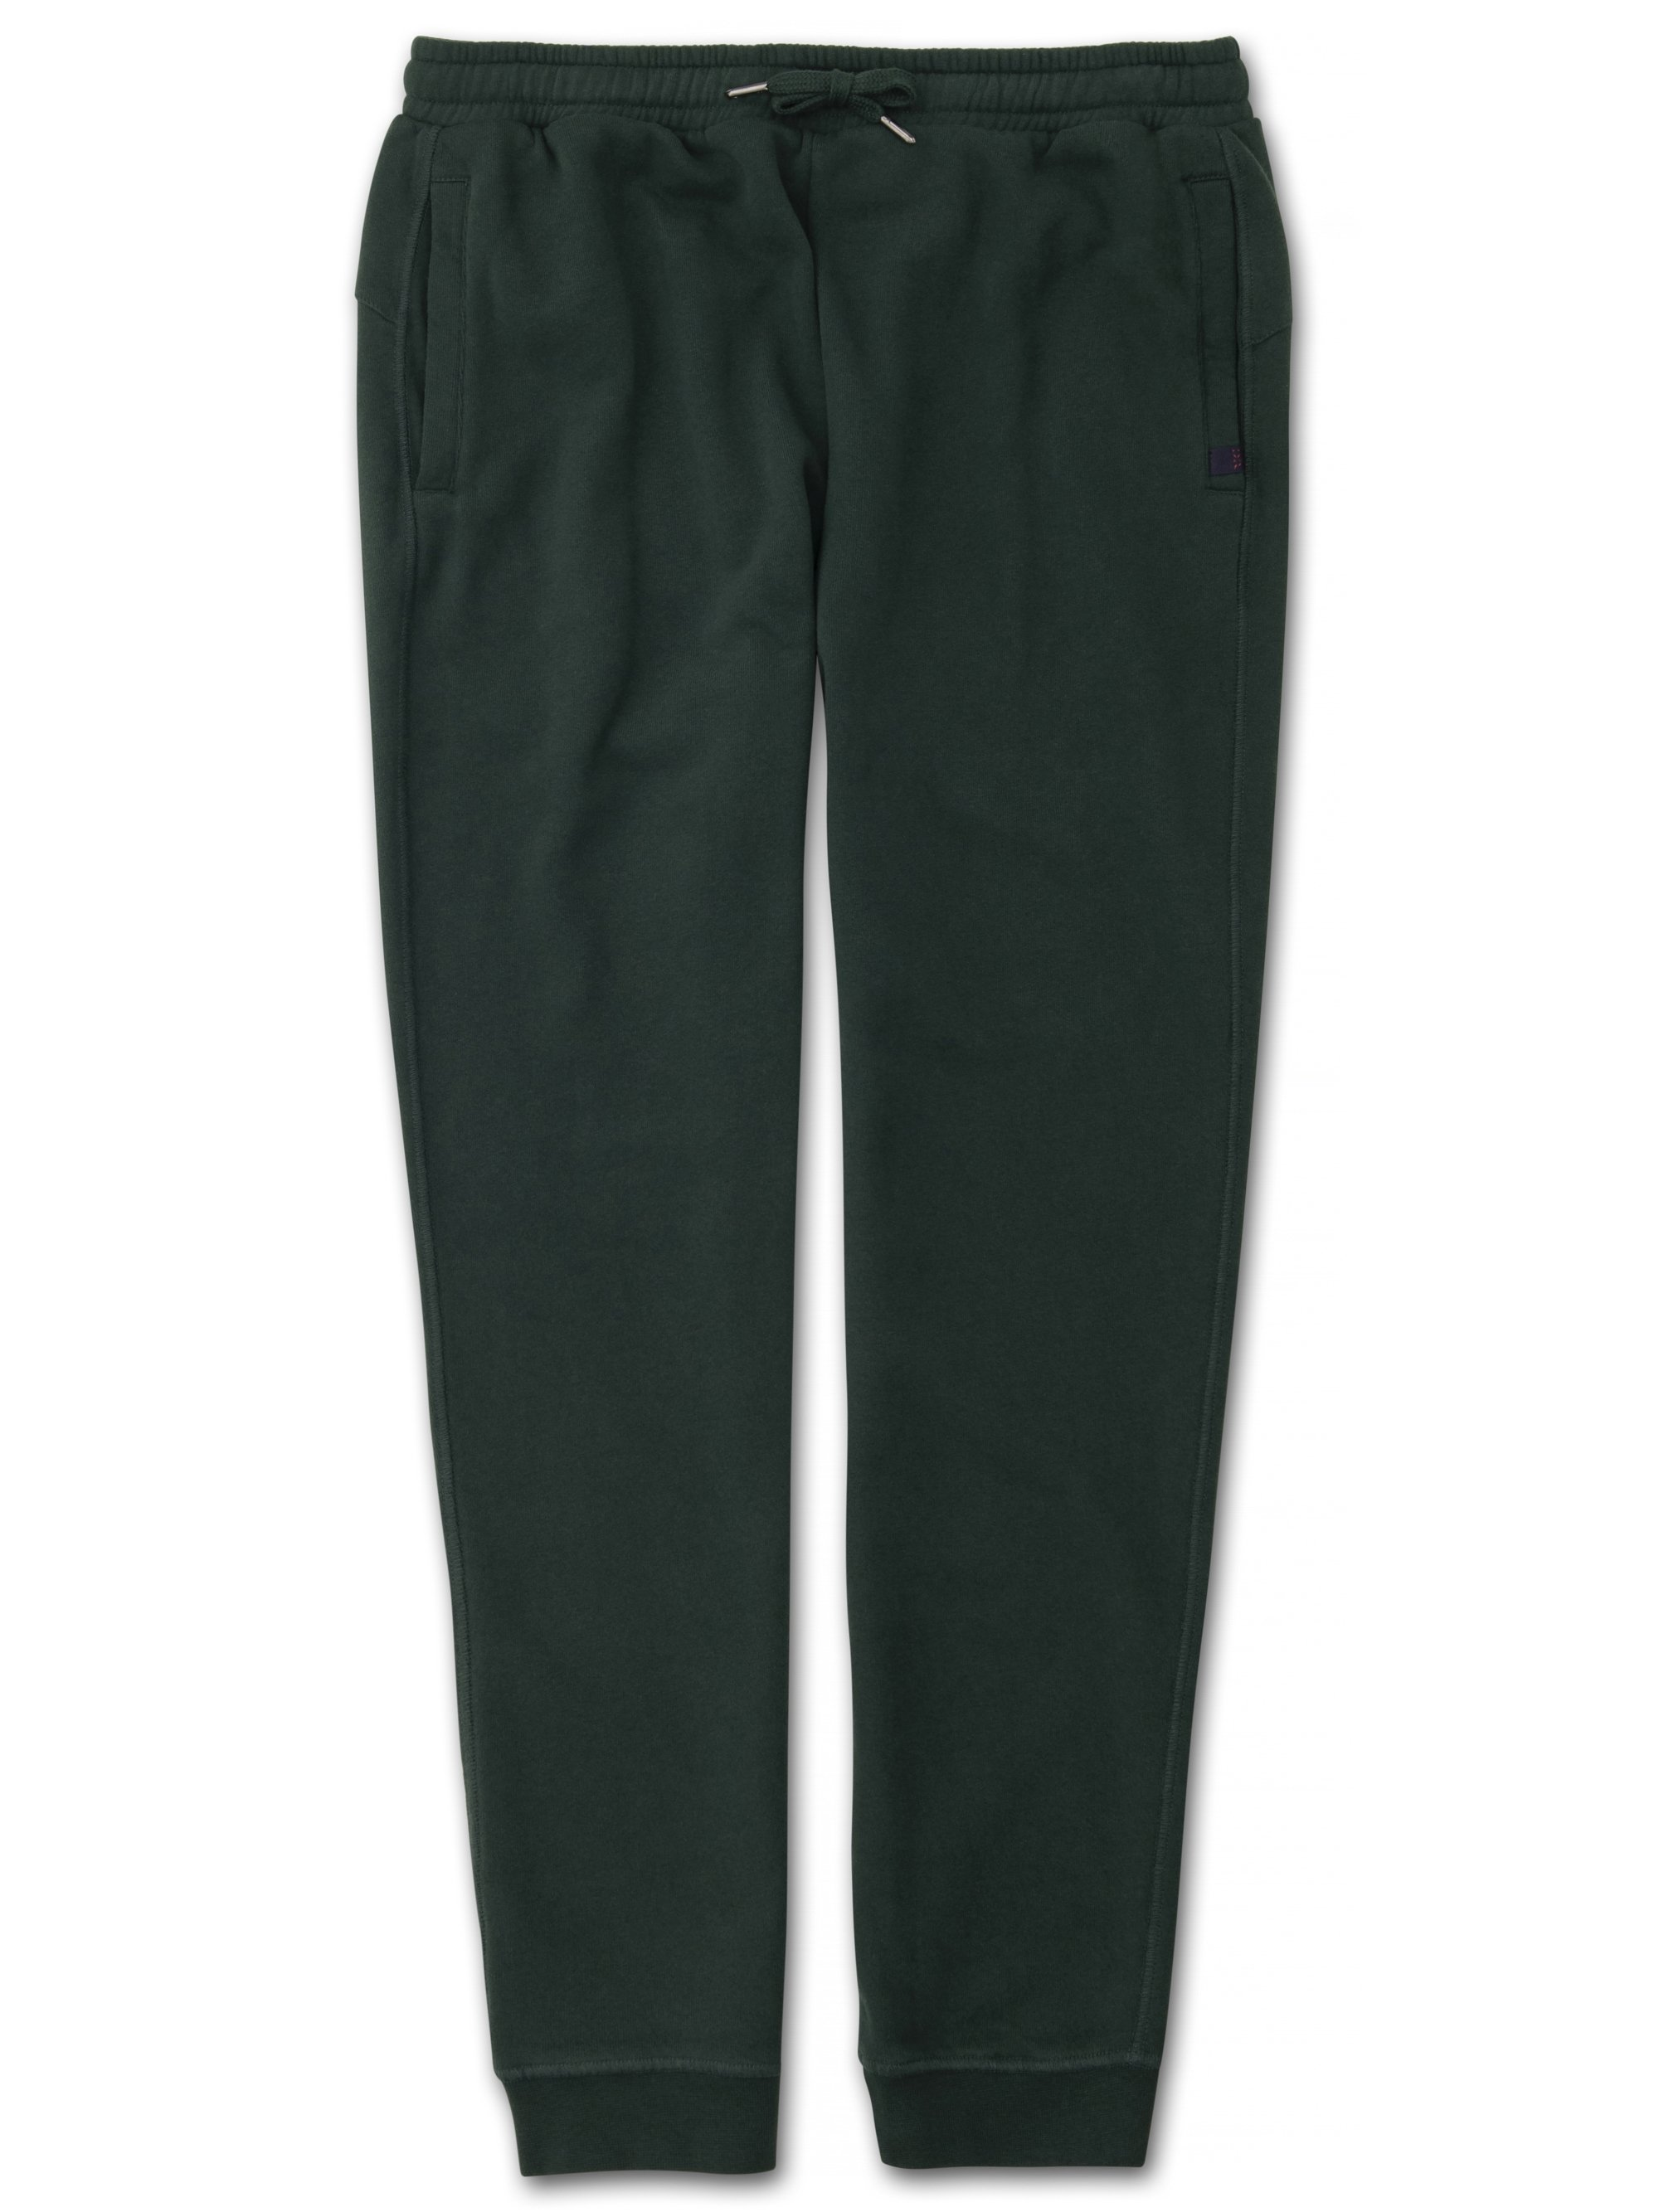 Men's Sweatpants Devon Loopback Cotton Green